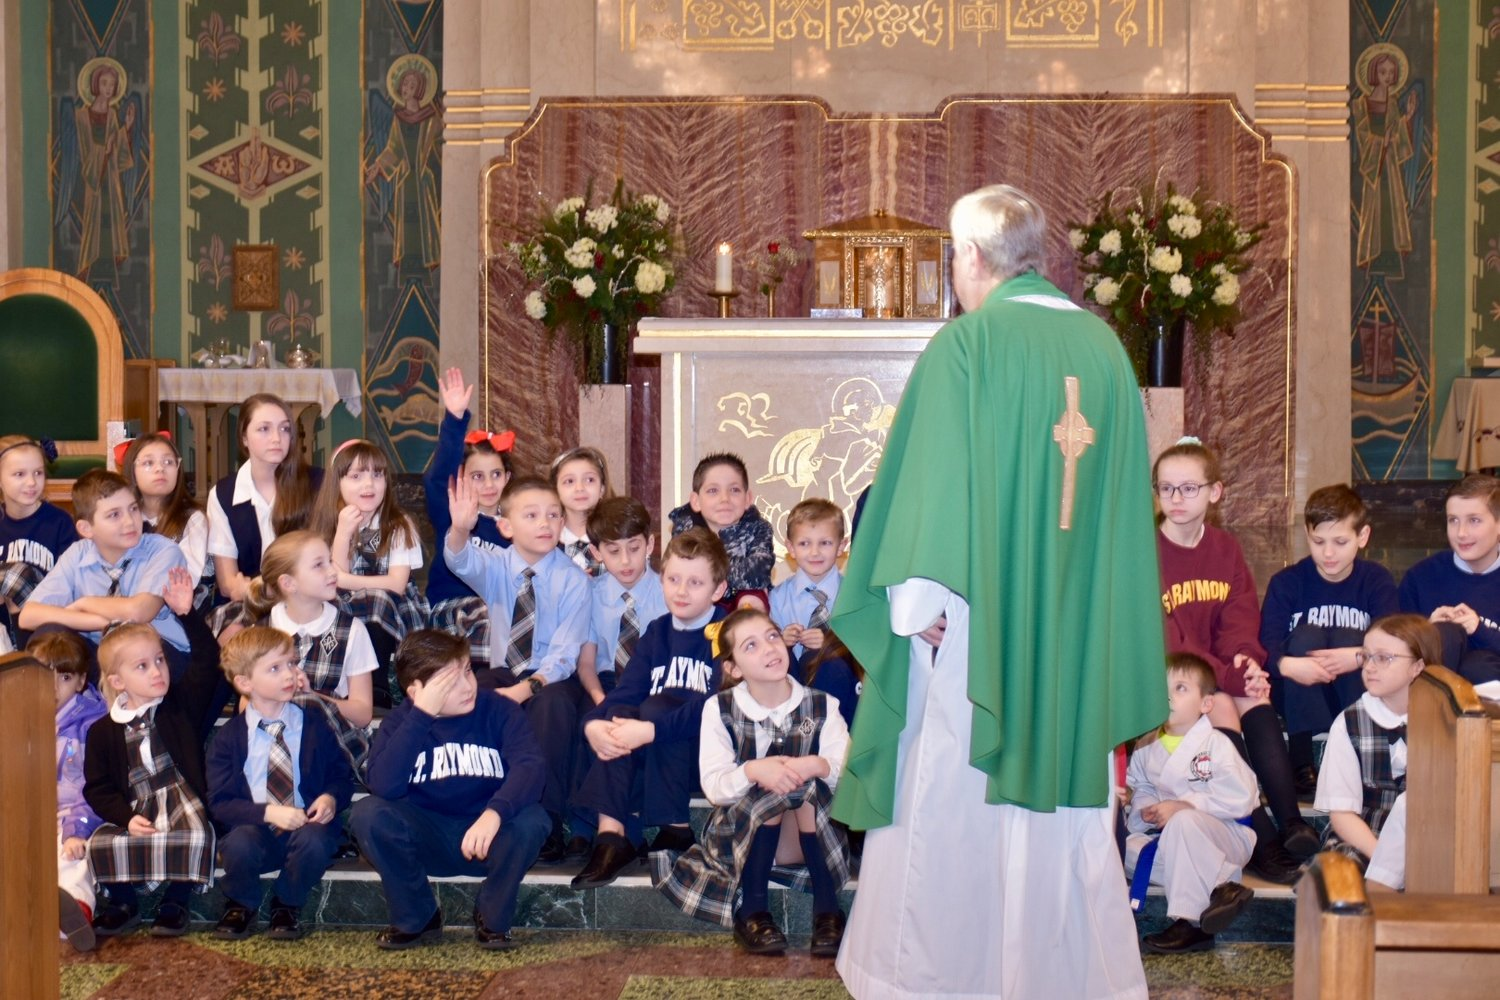 Students at St. Raymond's Parochial School in East Rockaway celebrated Catholic Schools Week from Jan. 27 through Feb. 2 with many activities.